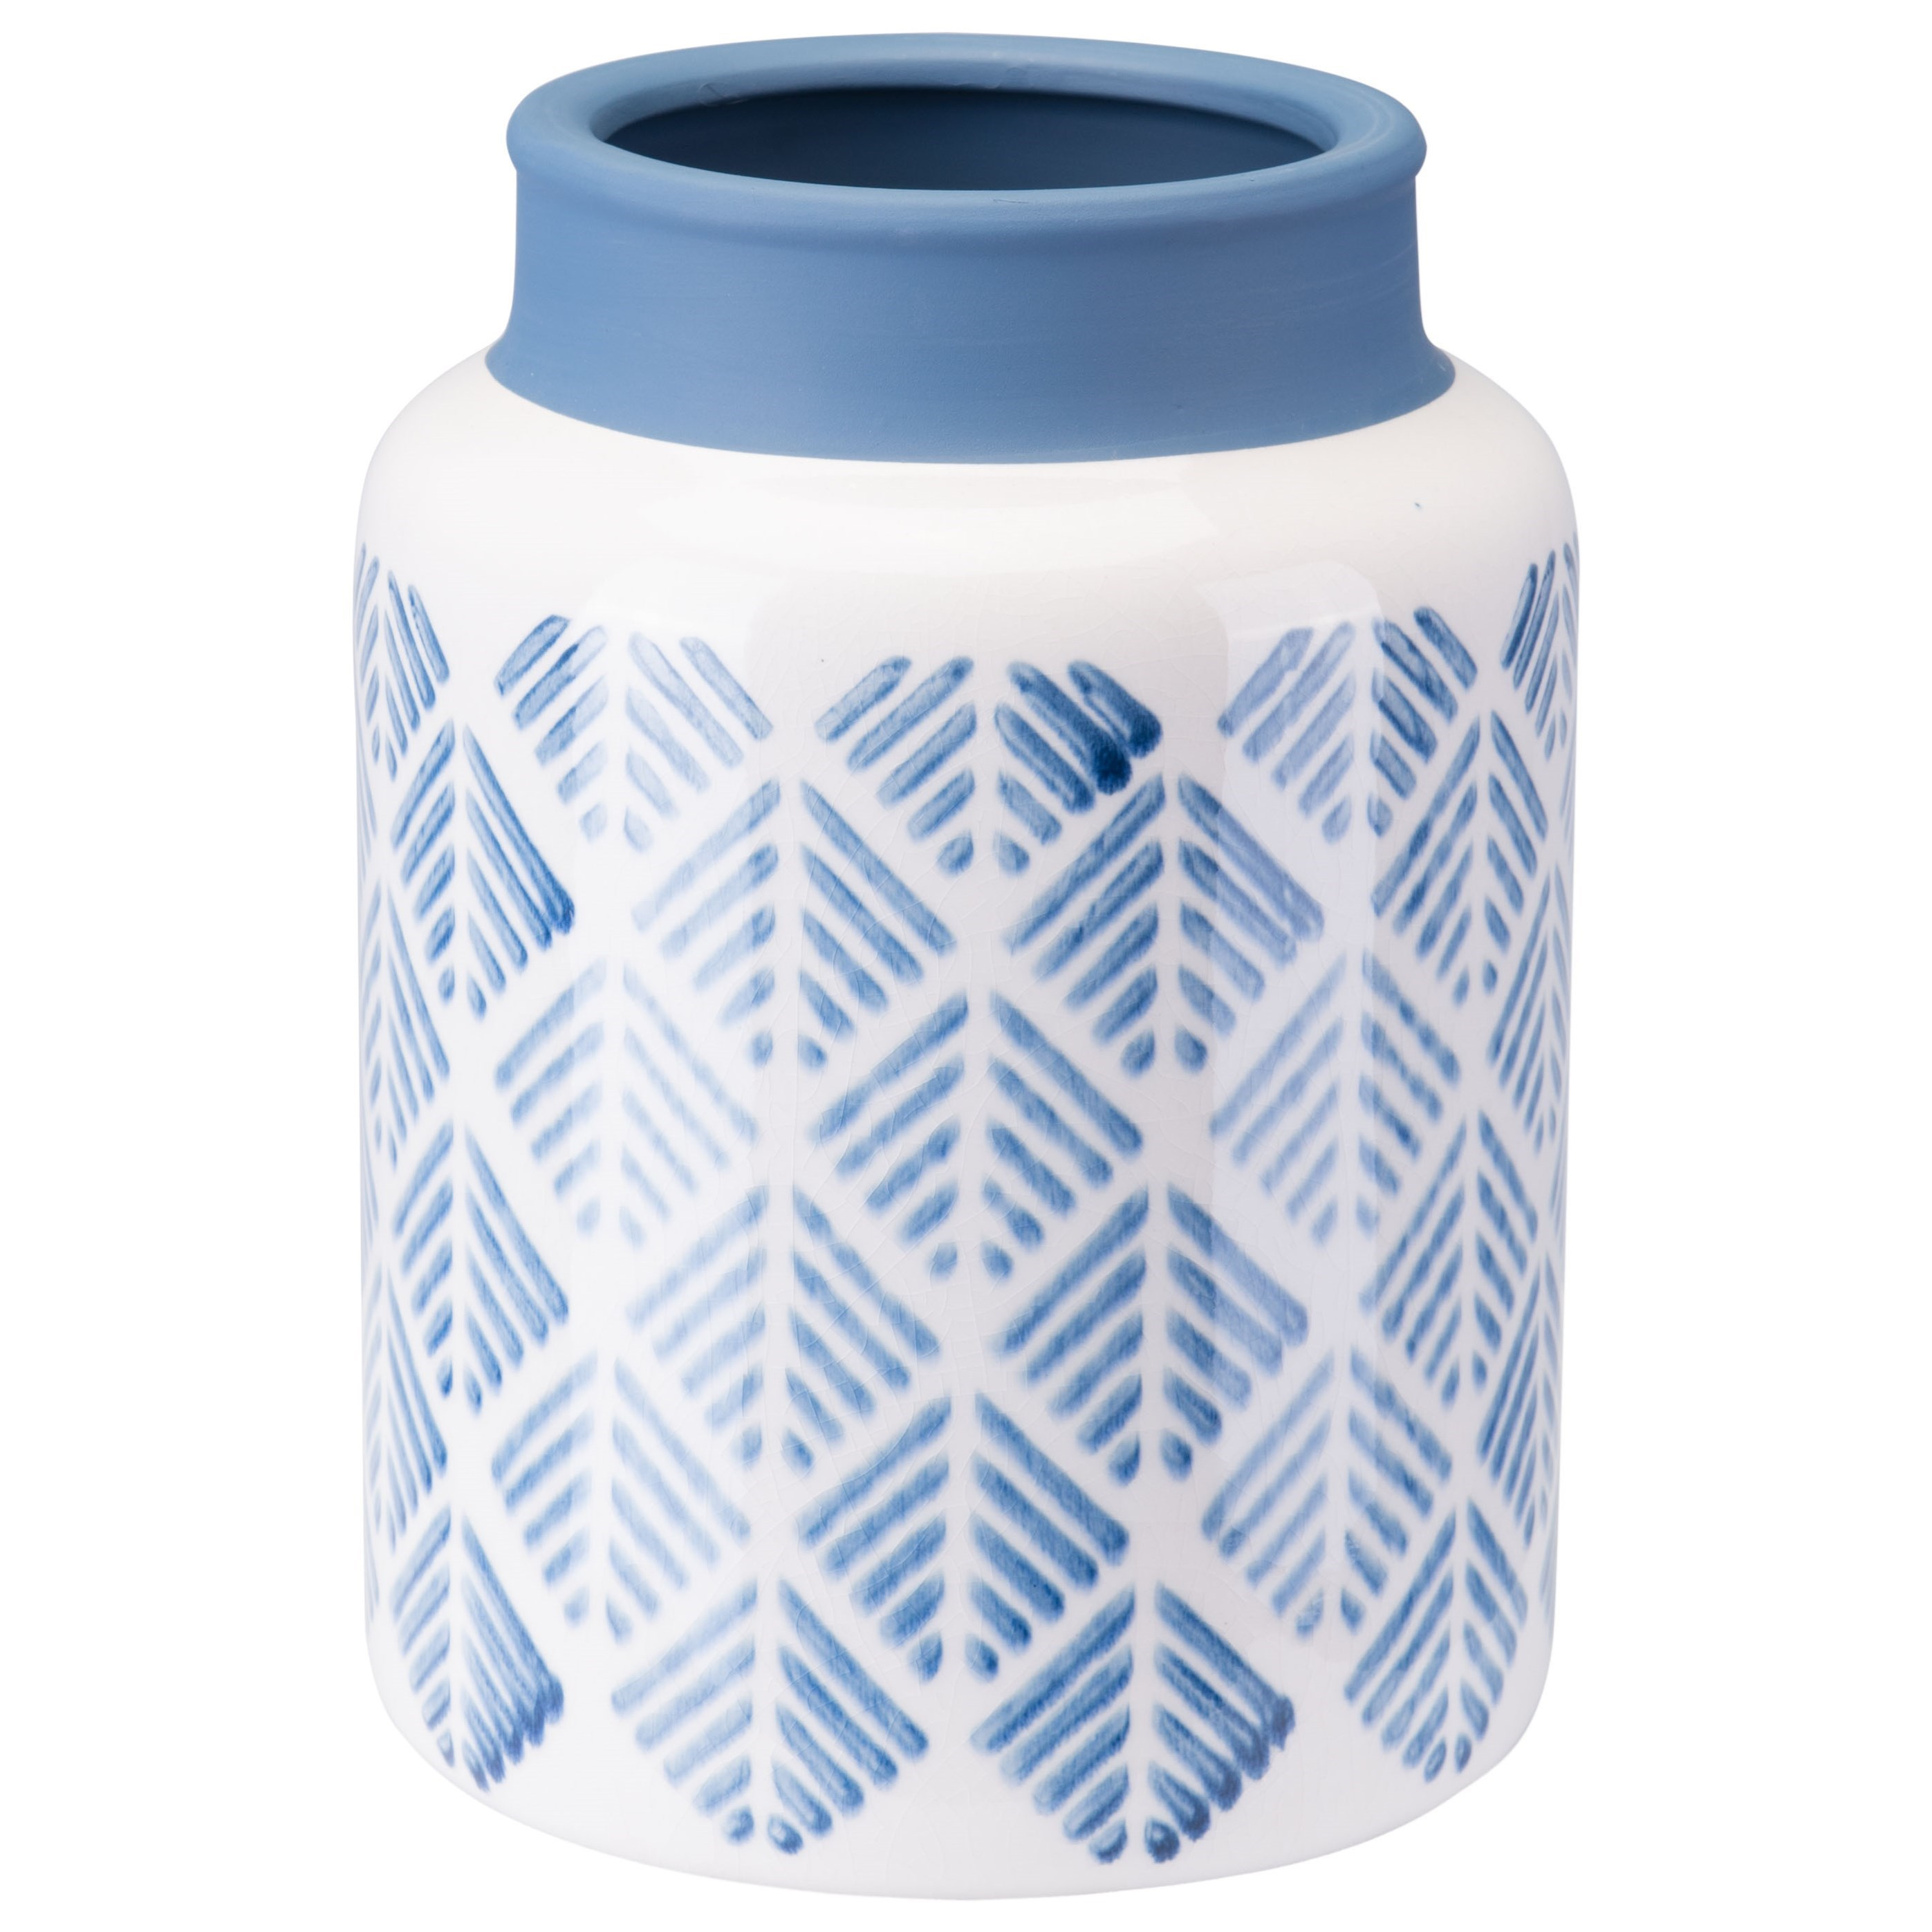 Vases Zig Zag Vase Small  by Zuo at Nassau Furniture and Mattress